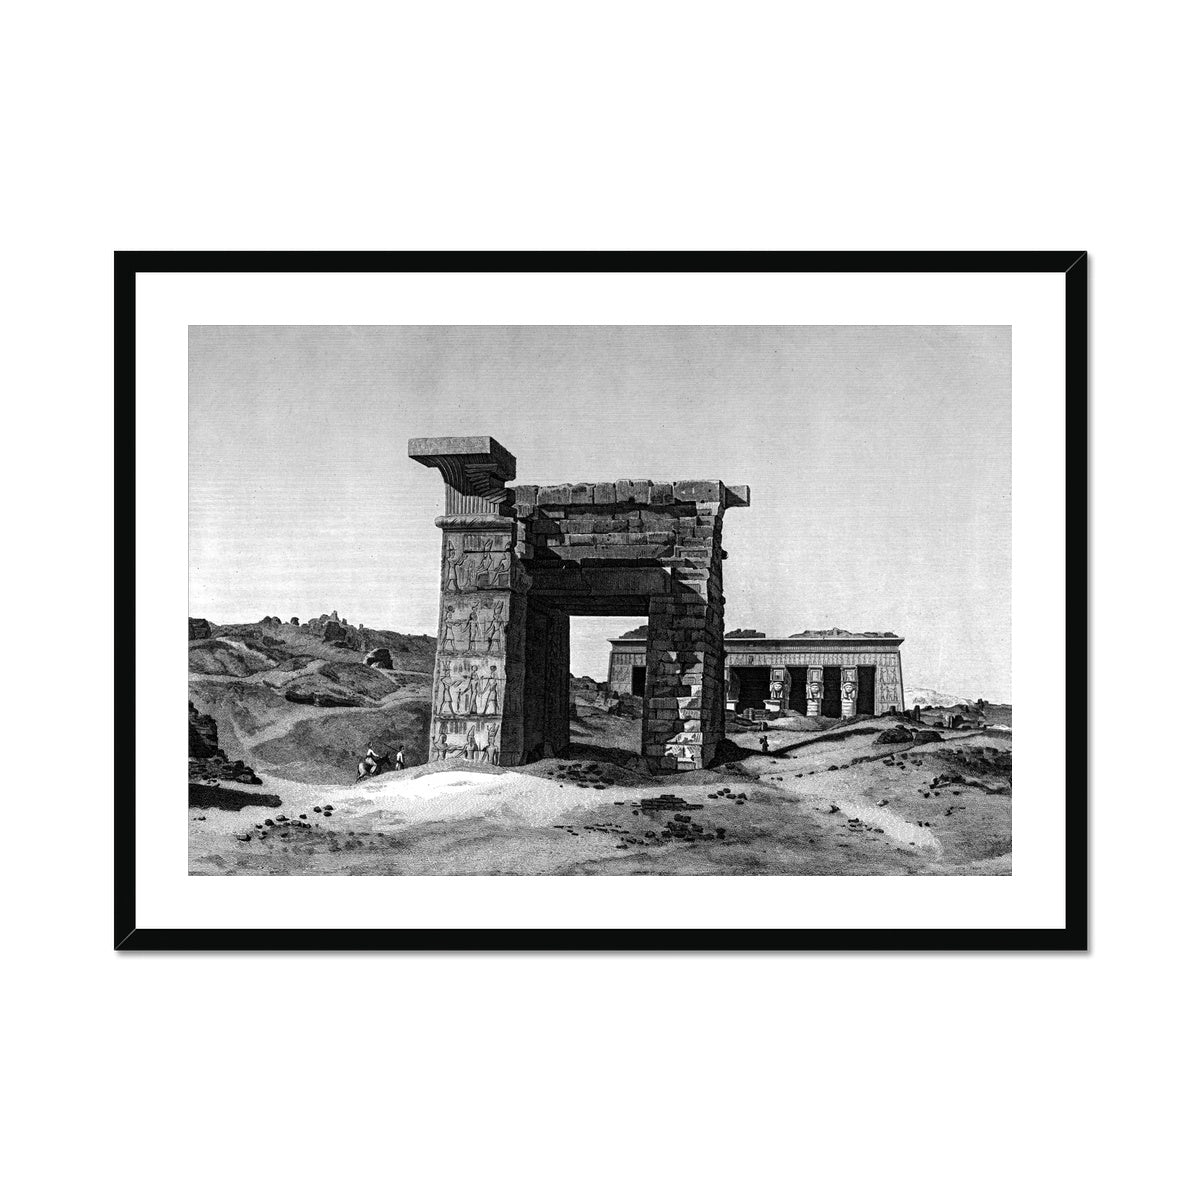 The Temple of Hathor - Dendera Egypt -  Framed & Mounted Print